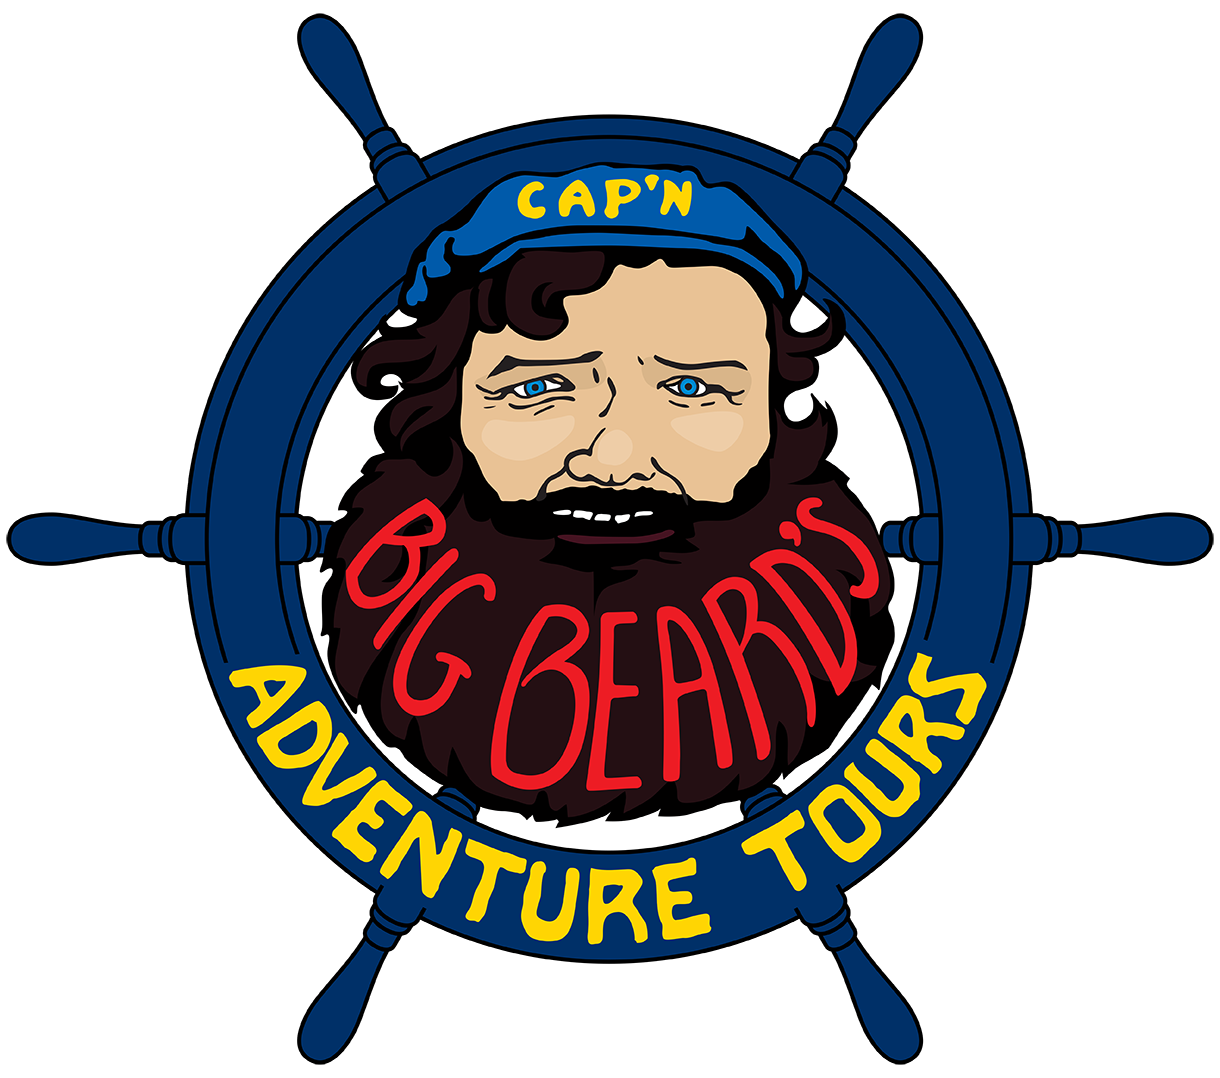 Big beards adventure tours. Sunset clipart island caribbean